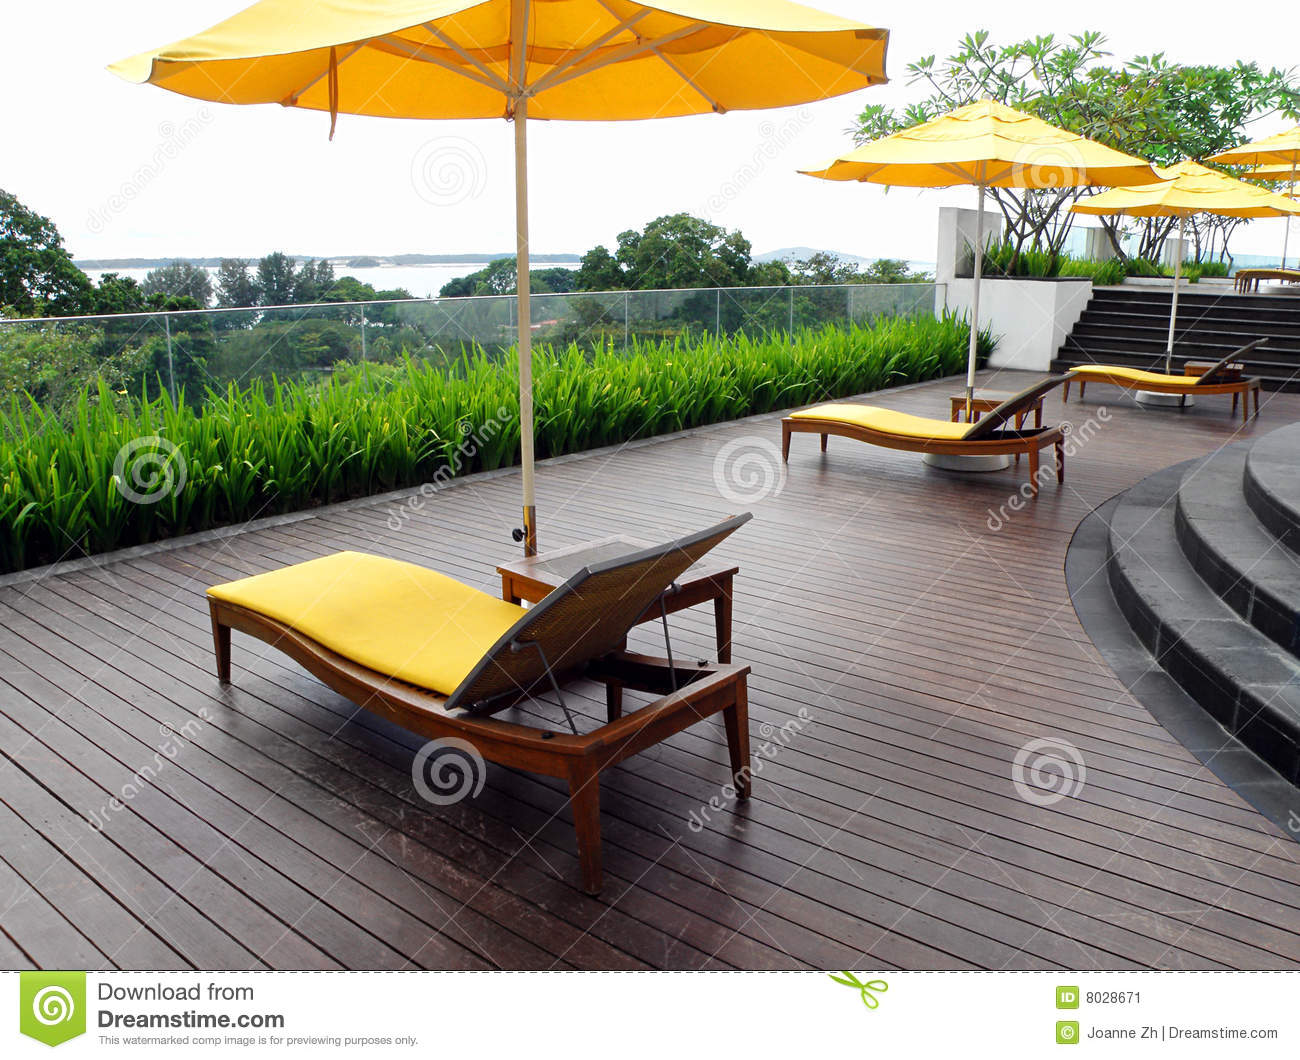 Stock Image Rooftop Garden Patio Design Image8028671 on outdoor high table and chairs